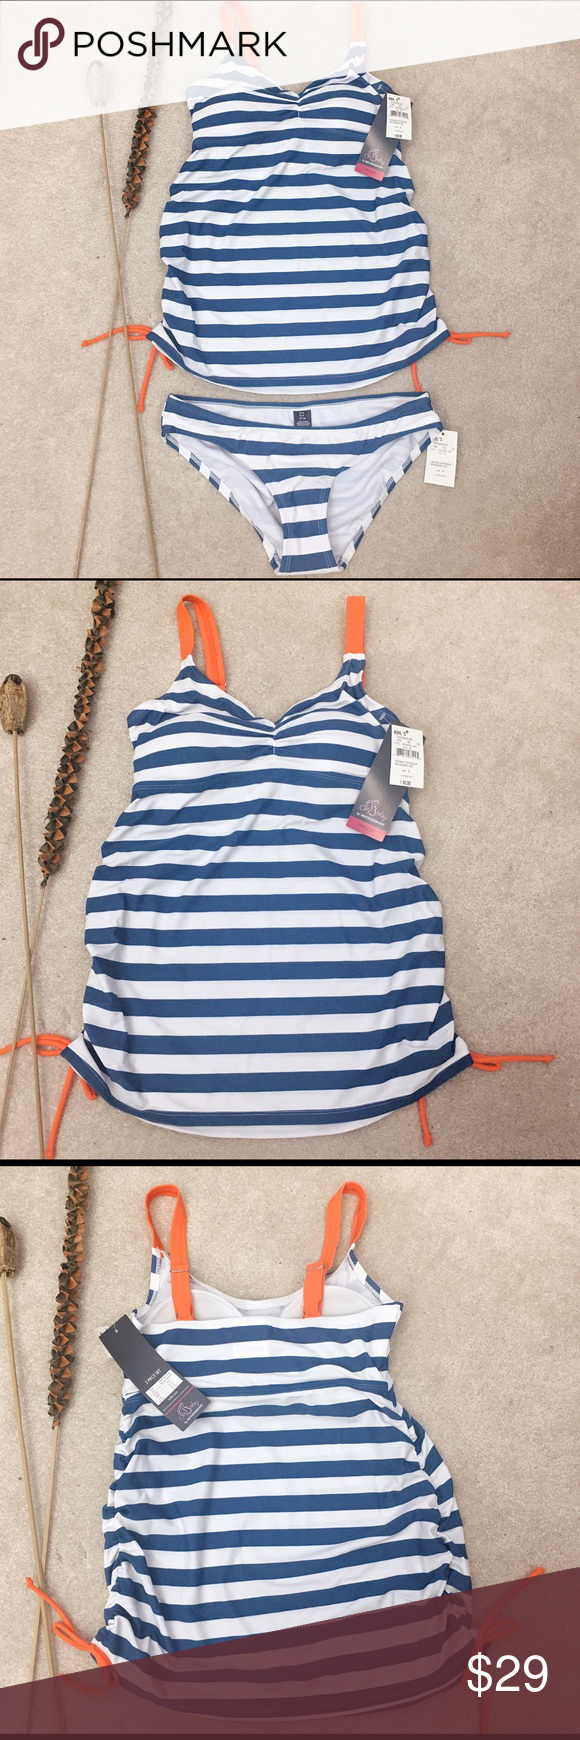 Oh baby by motherhood maternity swimsuitlast nwt white oh baby by motherhood maternity striped swimsuit retail for 60 two pcs set navy blue ombrellifo Choice Image